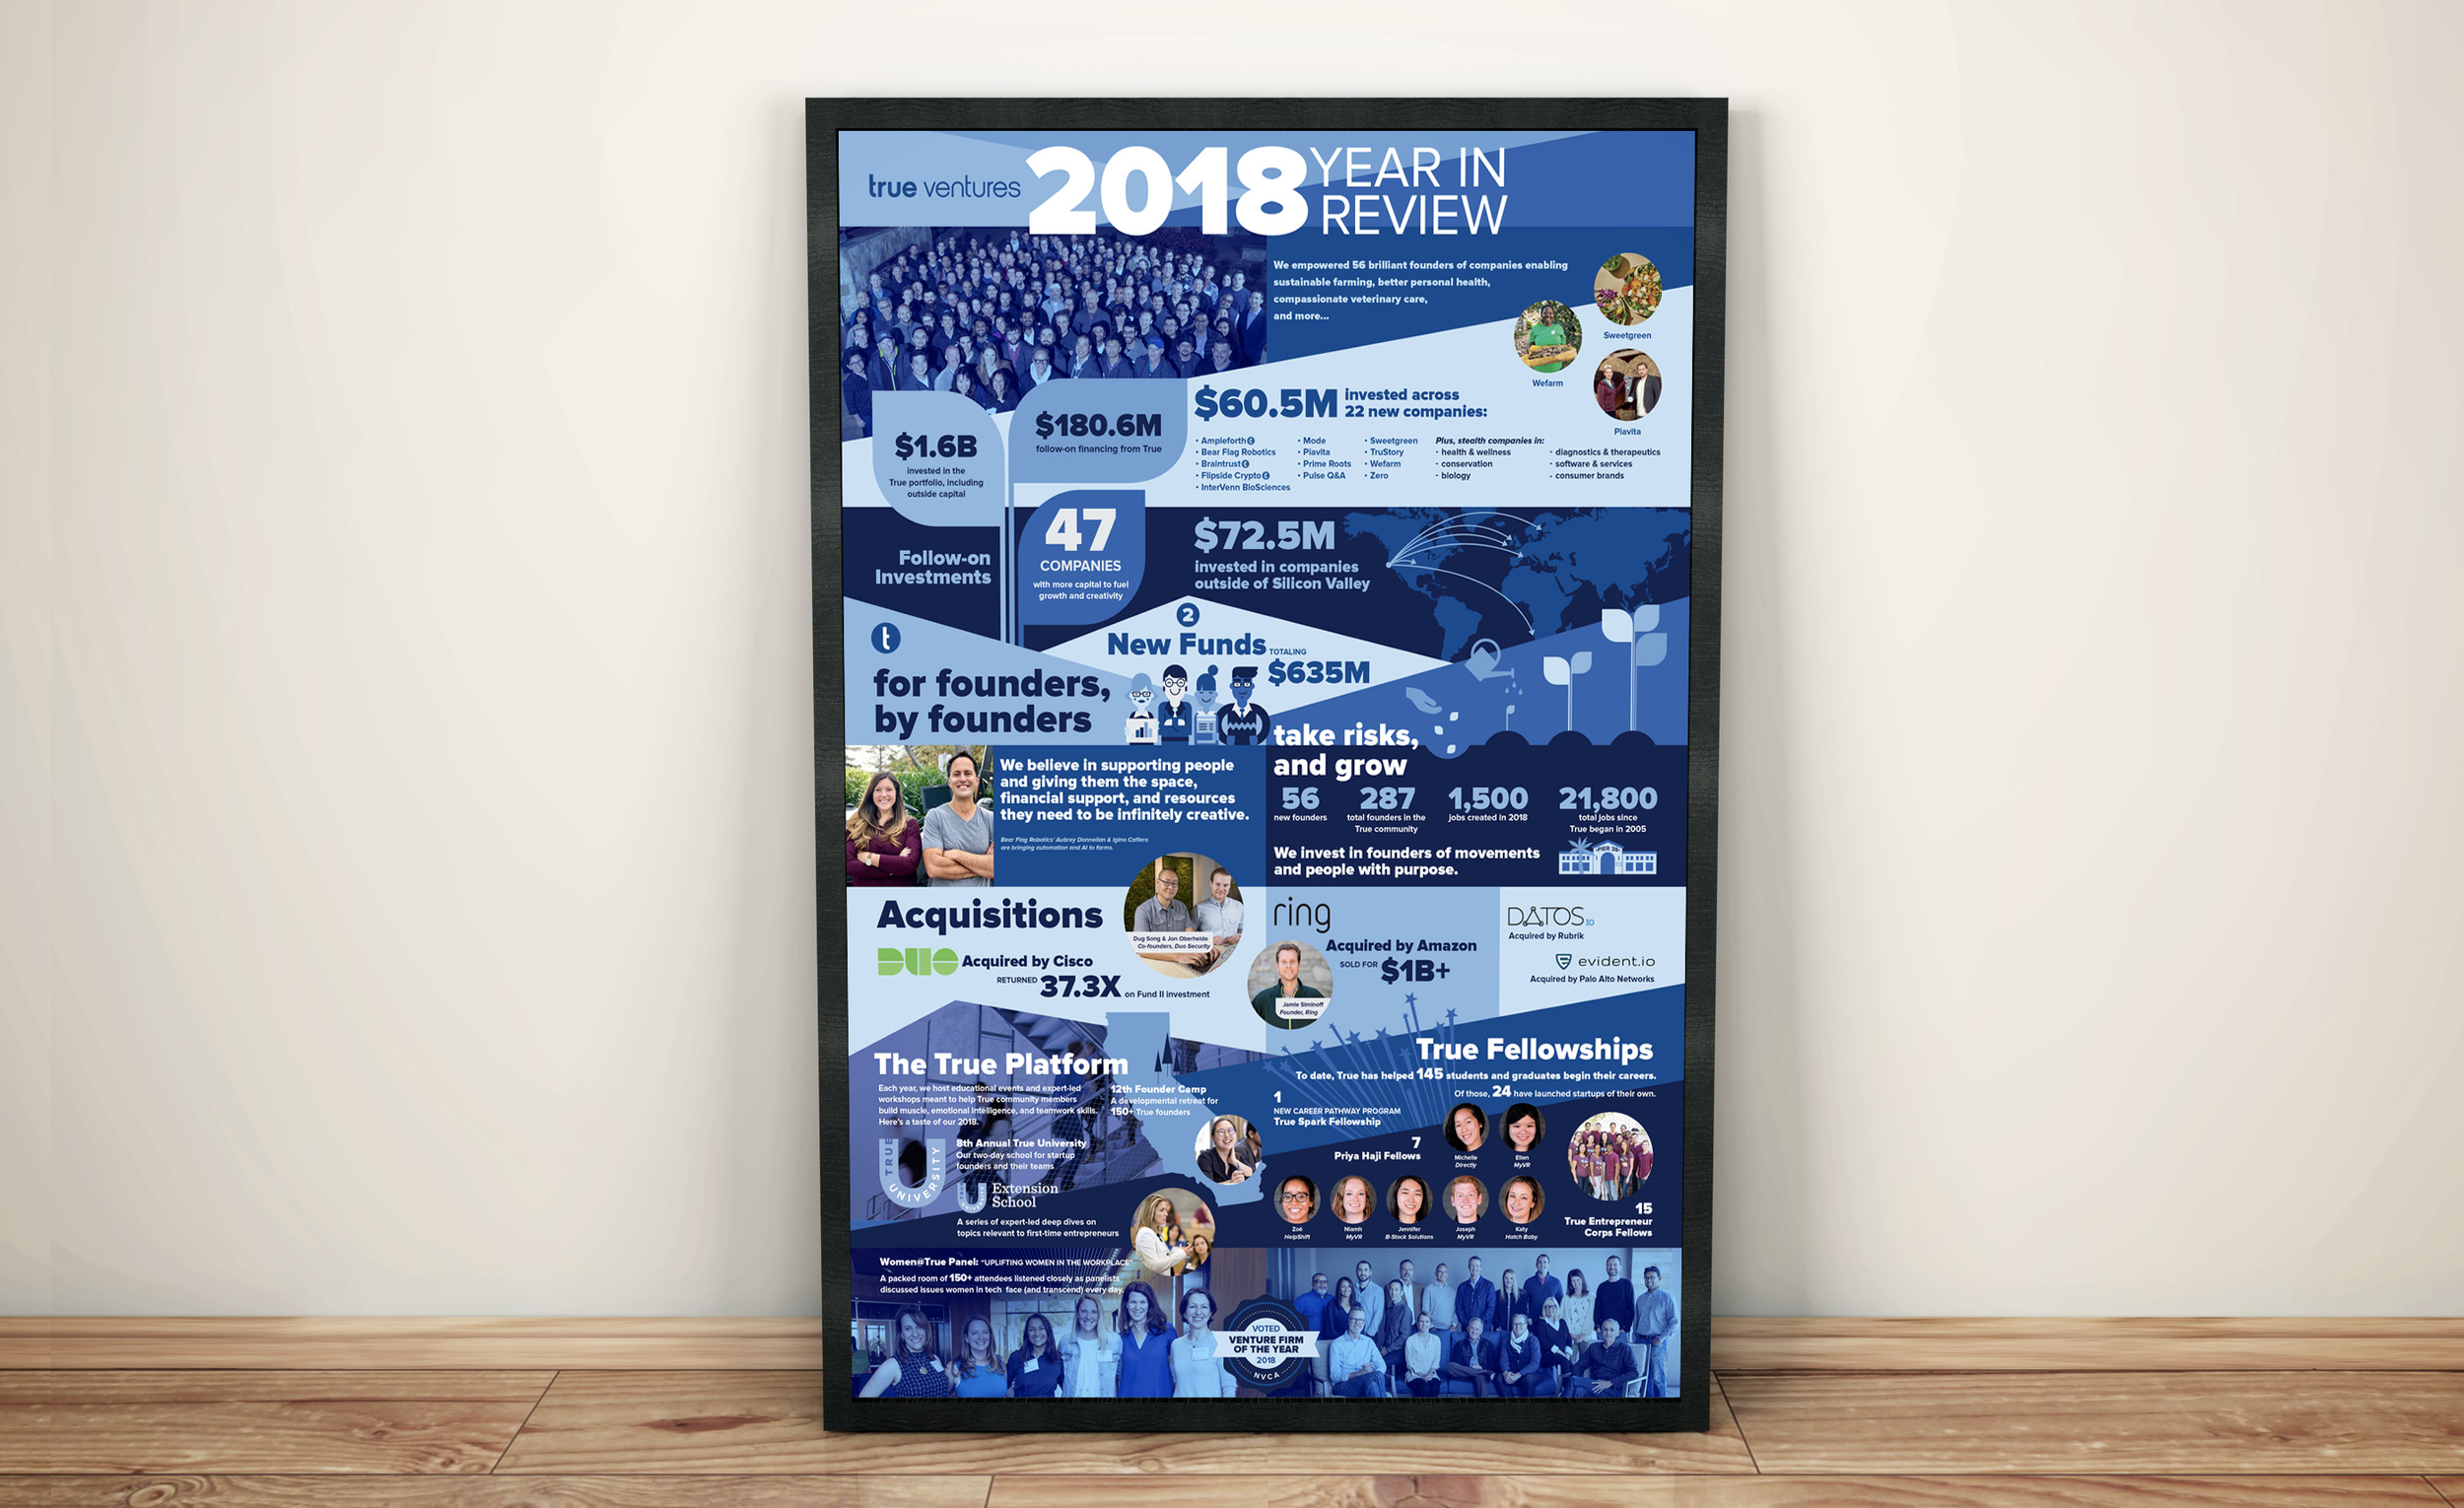 True Ventures 2018 year In Review Infographic Framed Poster